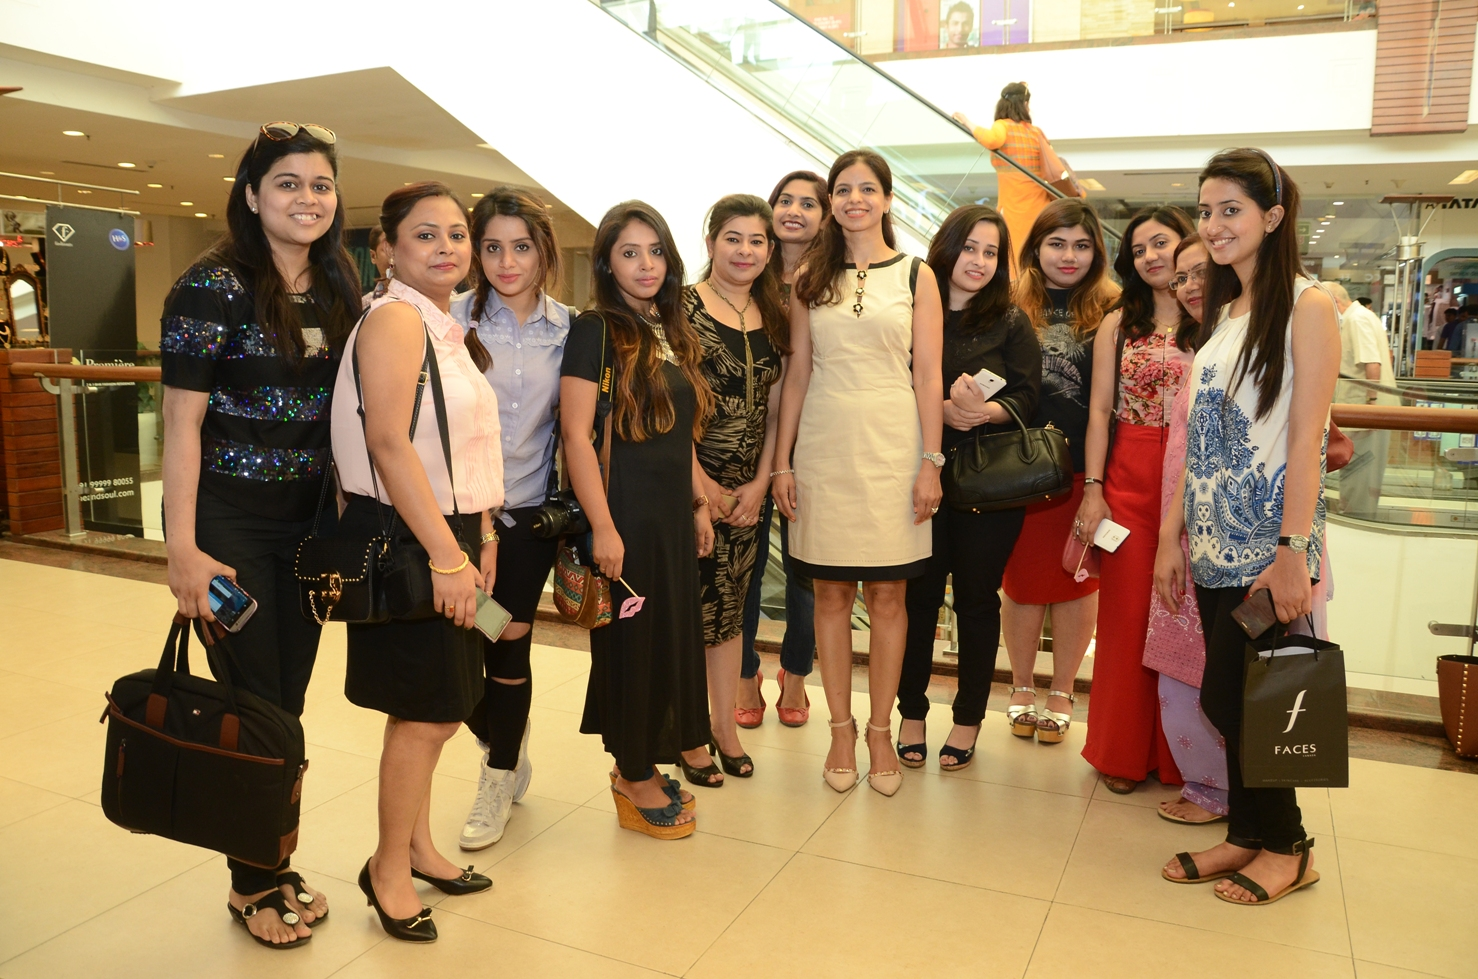 FACES CEO Sharmili Rajput with the bloggers